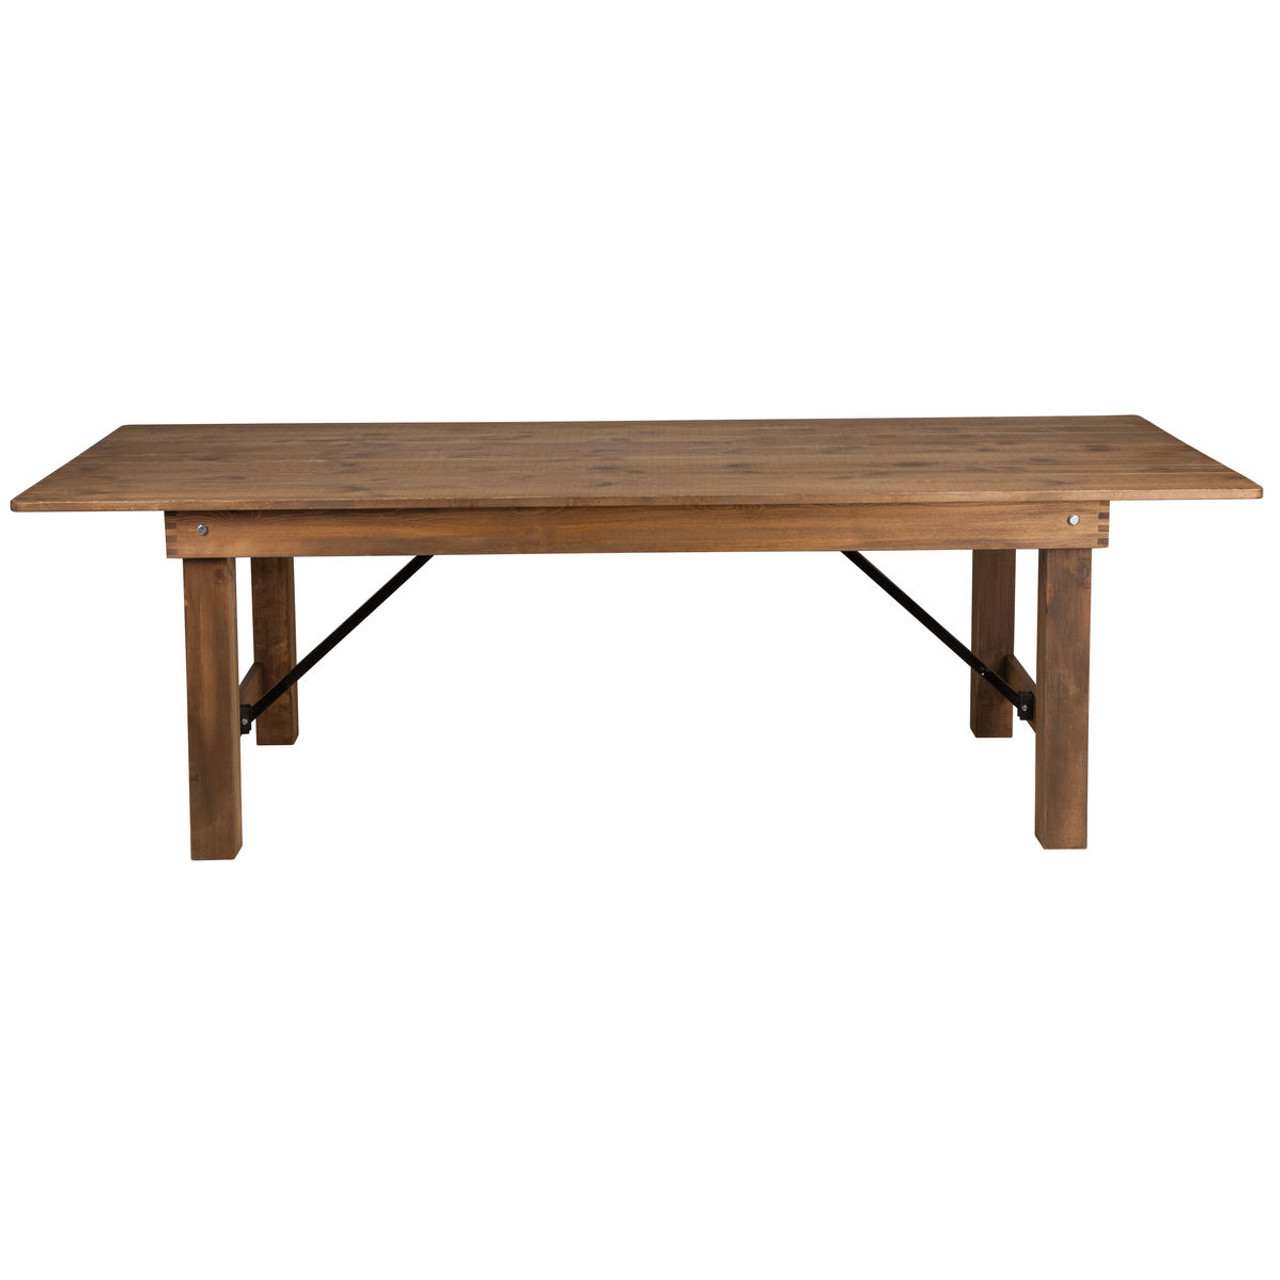 Farmhouse Table 40x108 Rustic Pine Wooden Folding Table